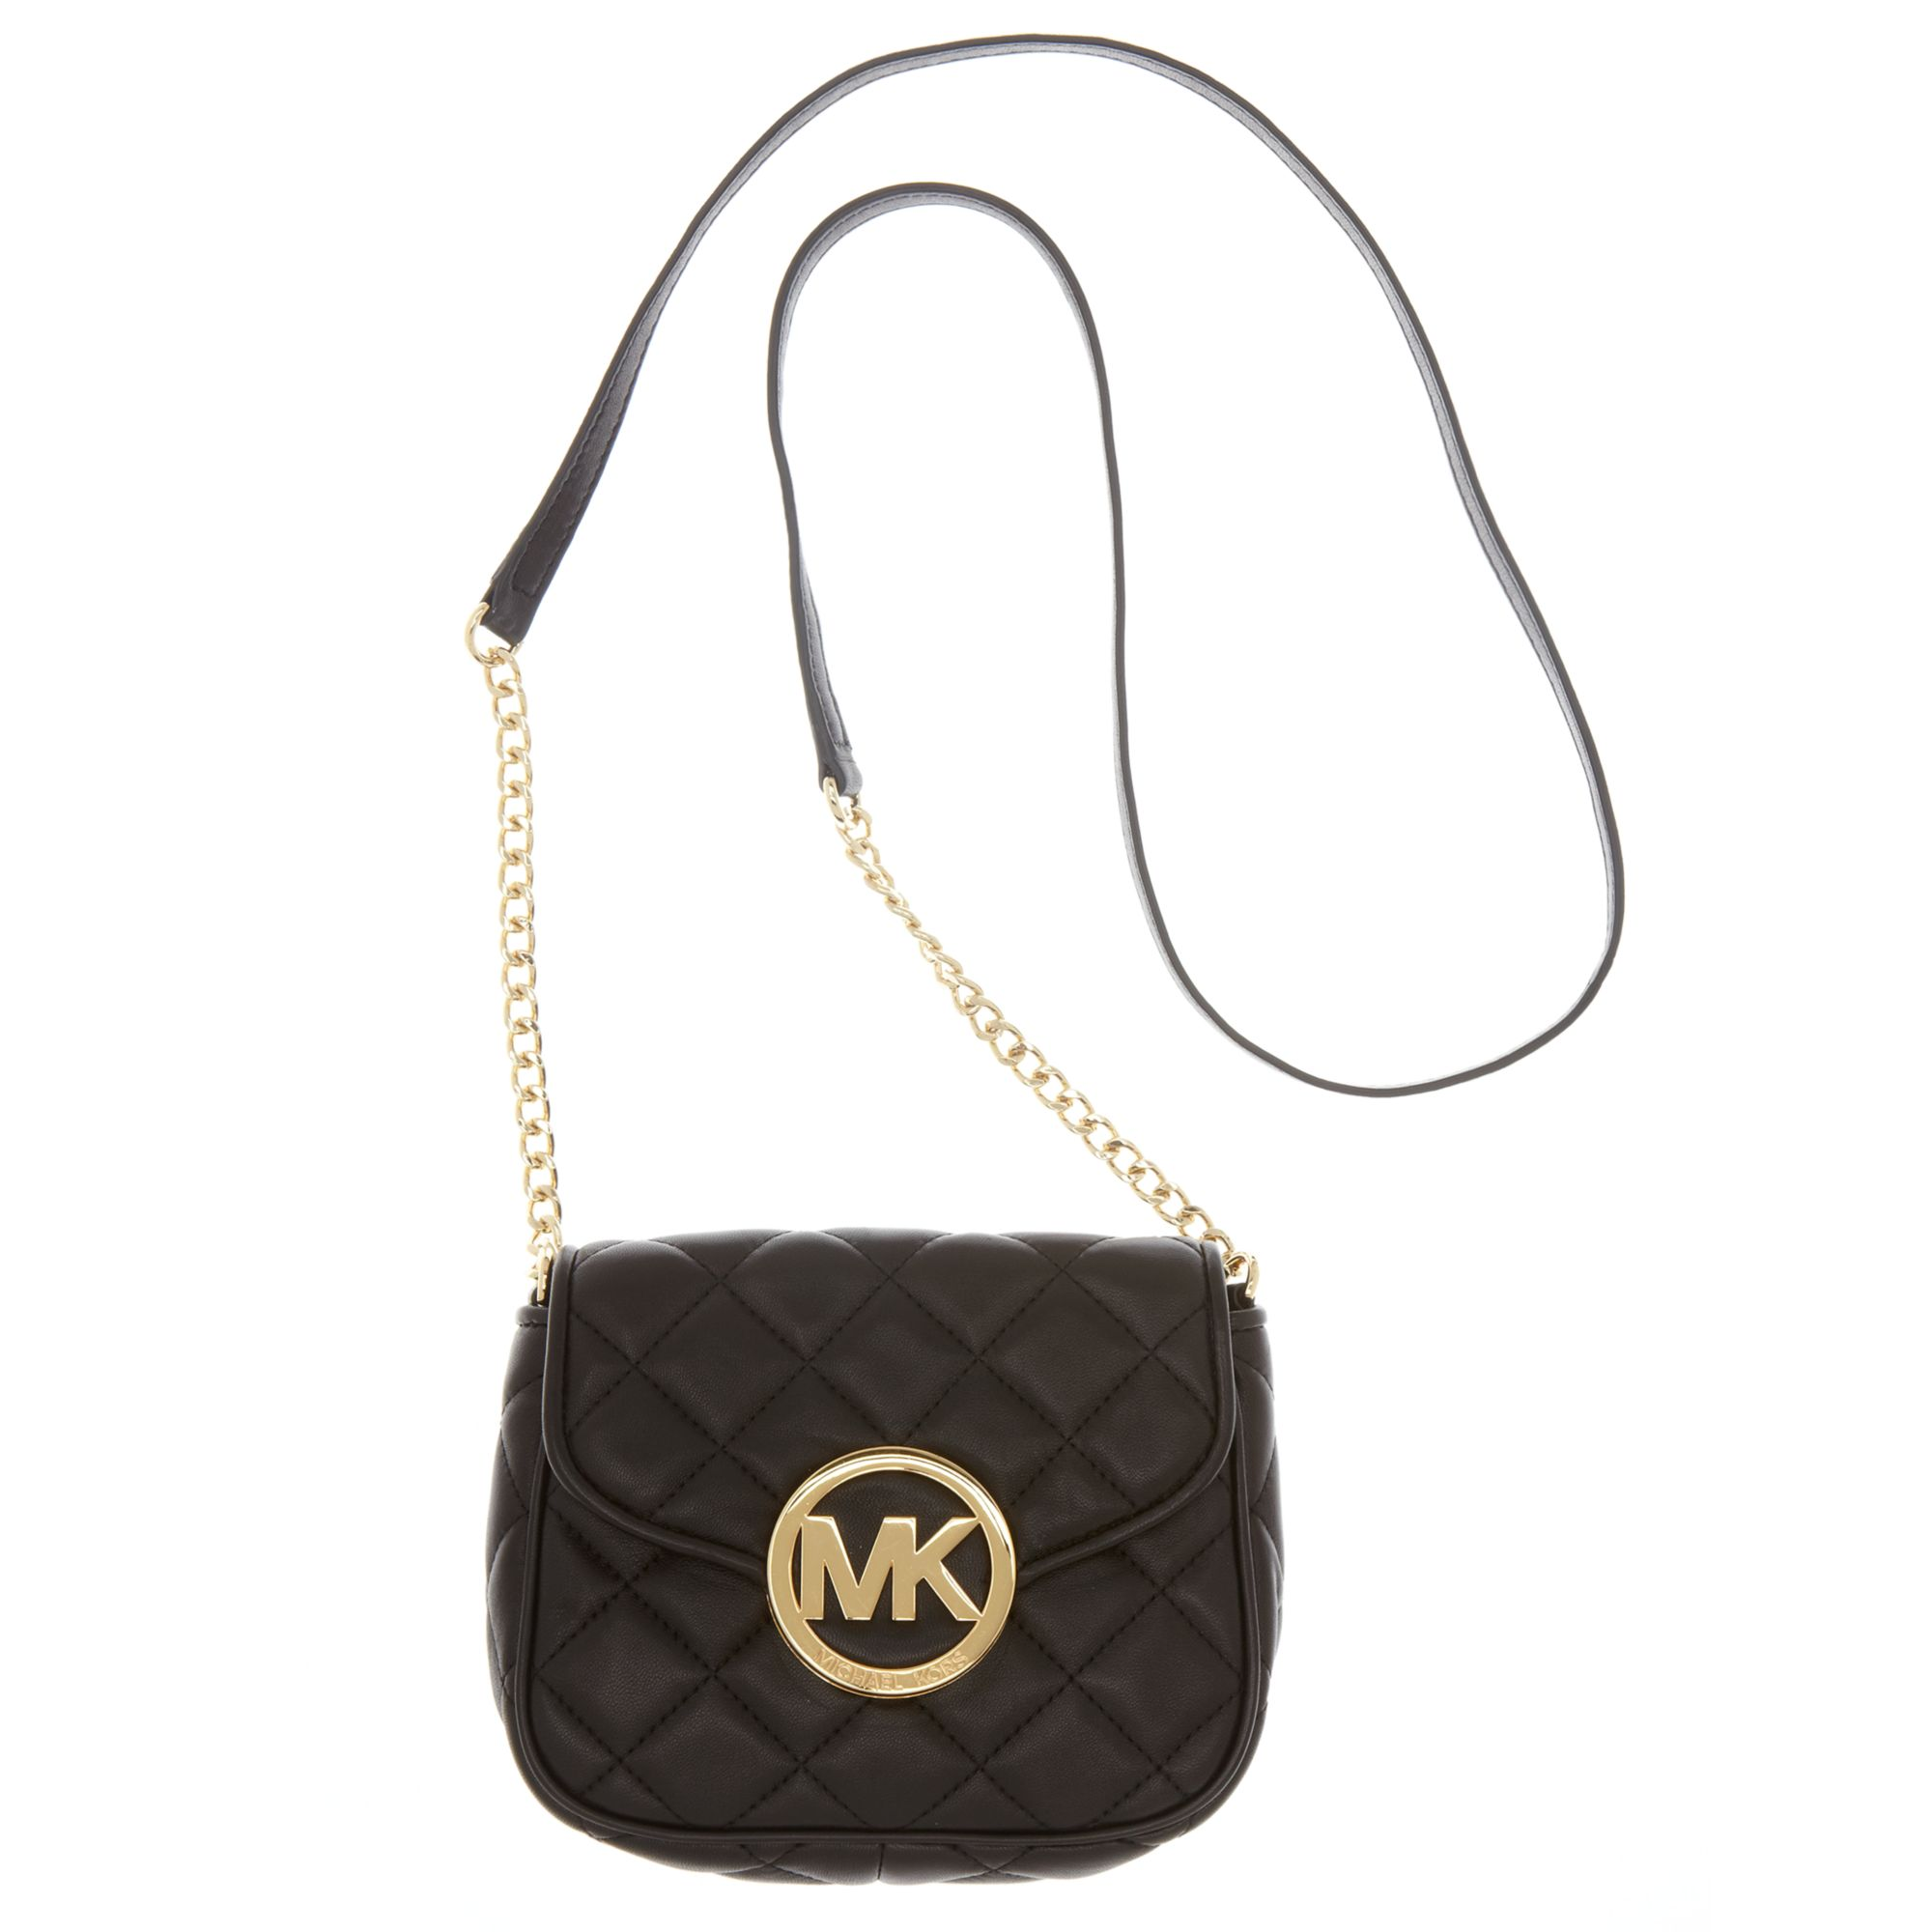 5b305f382 Gallery. Previously sold at: Macy's · Women's Michael By Michael Kors Fulton  Women's Michael Kors Quilted Bag